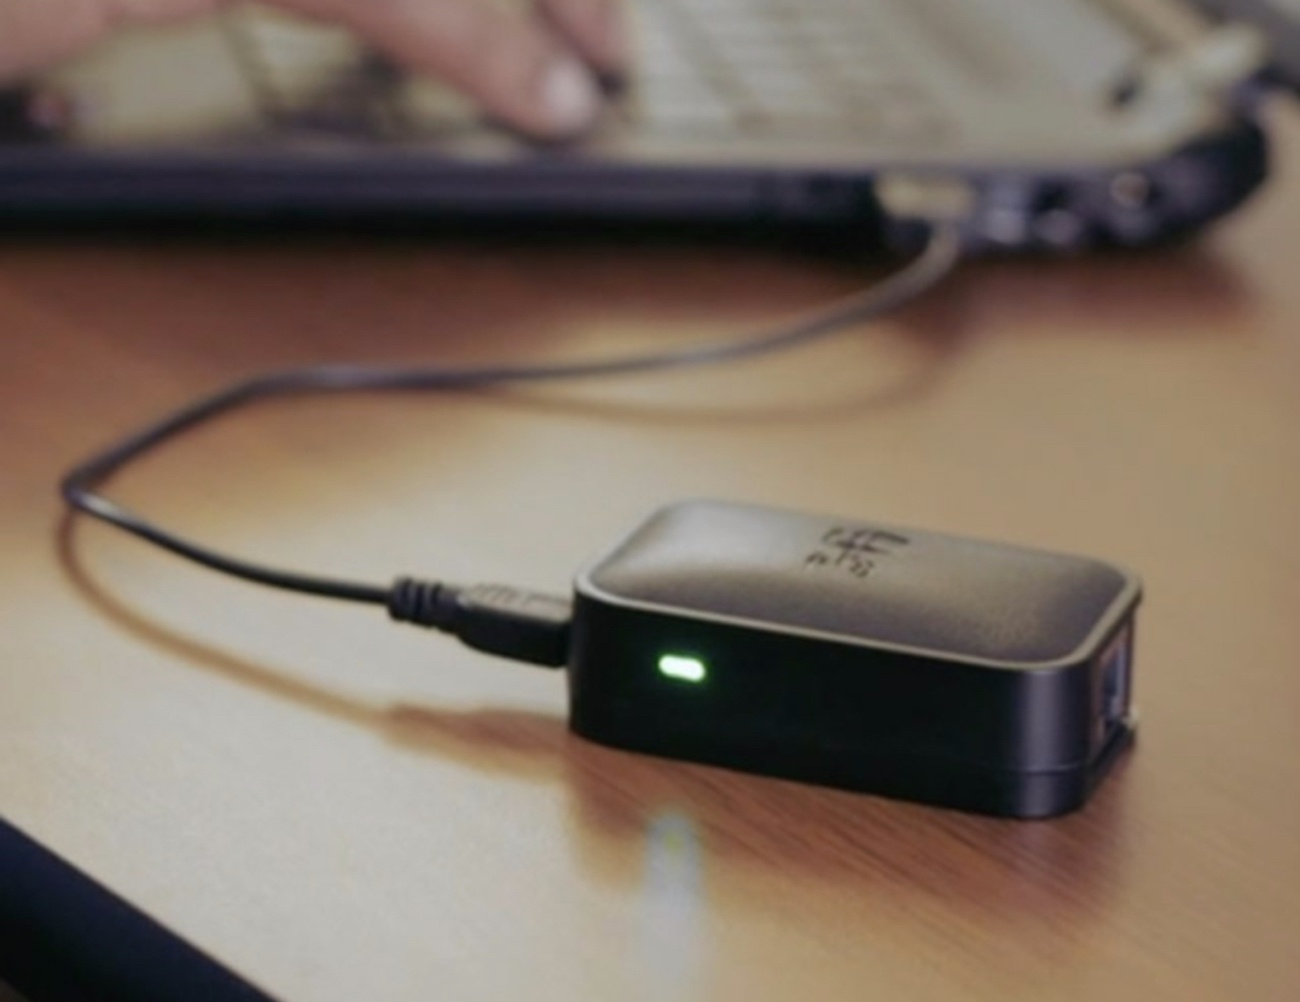 Anonabox PRO Wi-Fi Tor & VPN Router